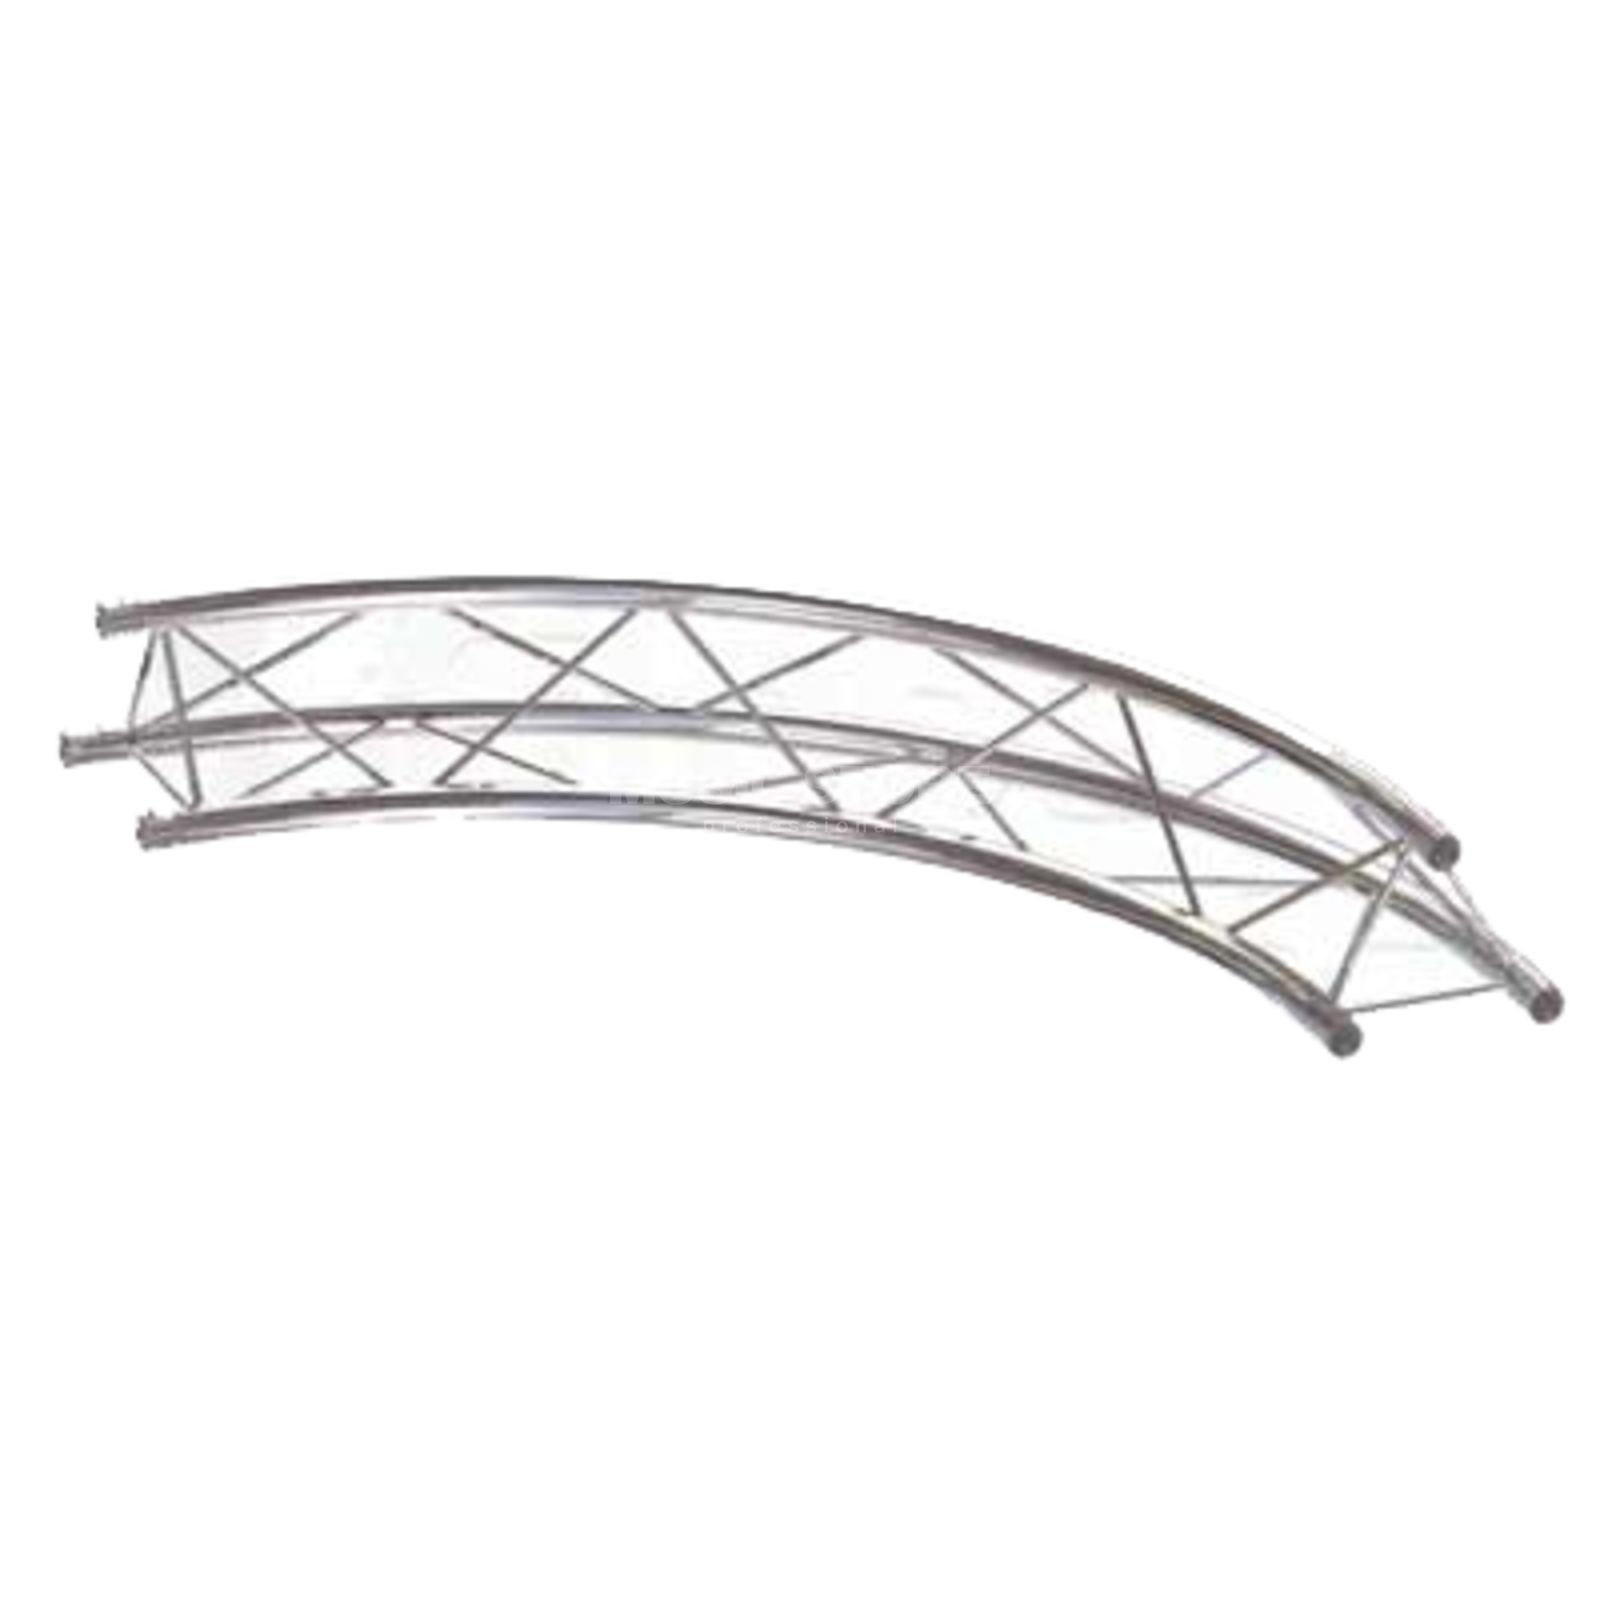 Global Truss F23 Decotruss Circular 60° 5m Produktbillede